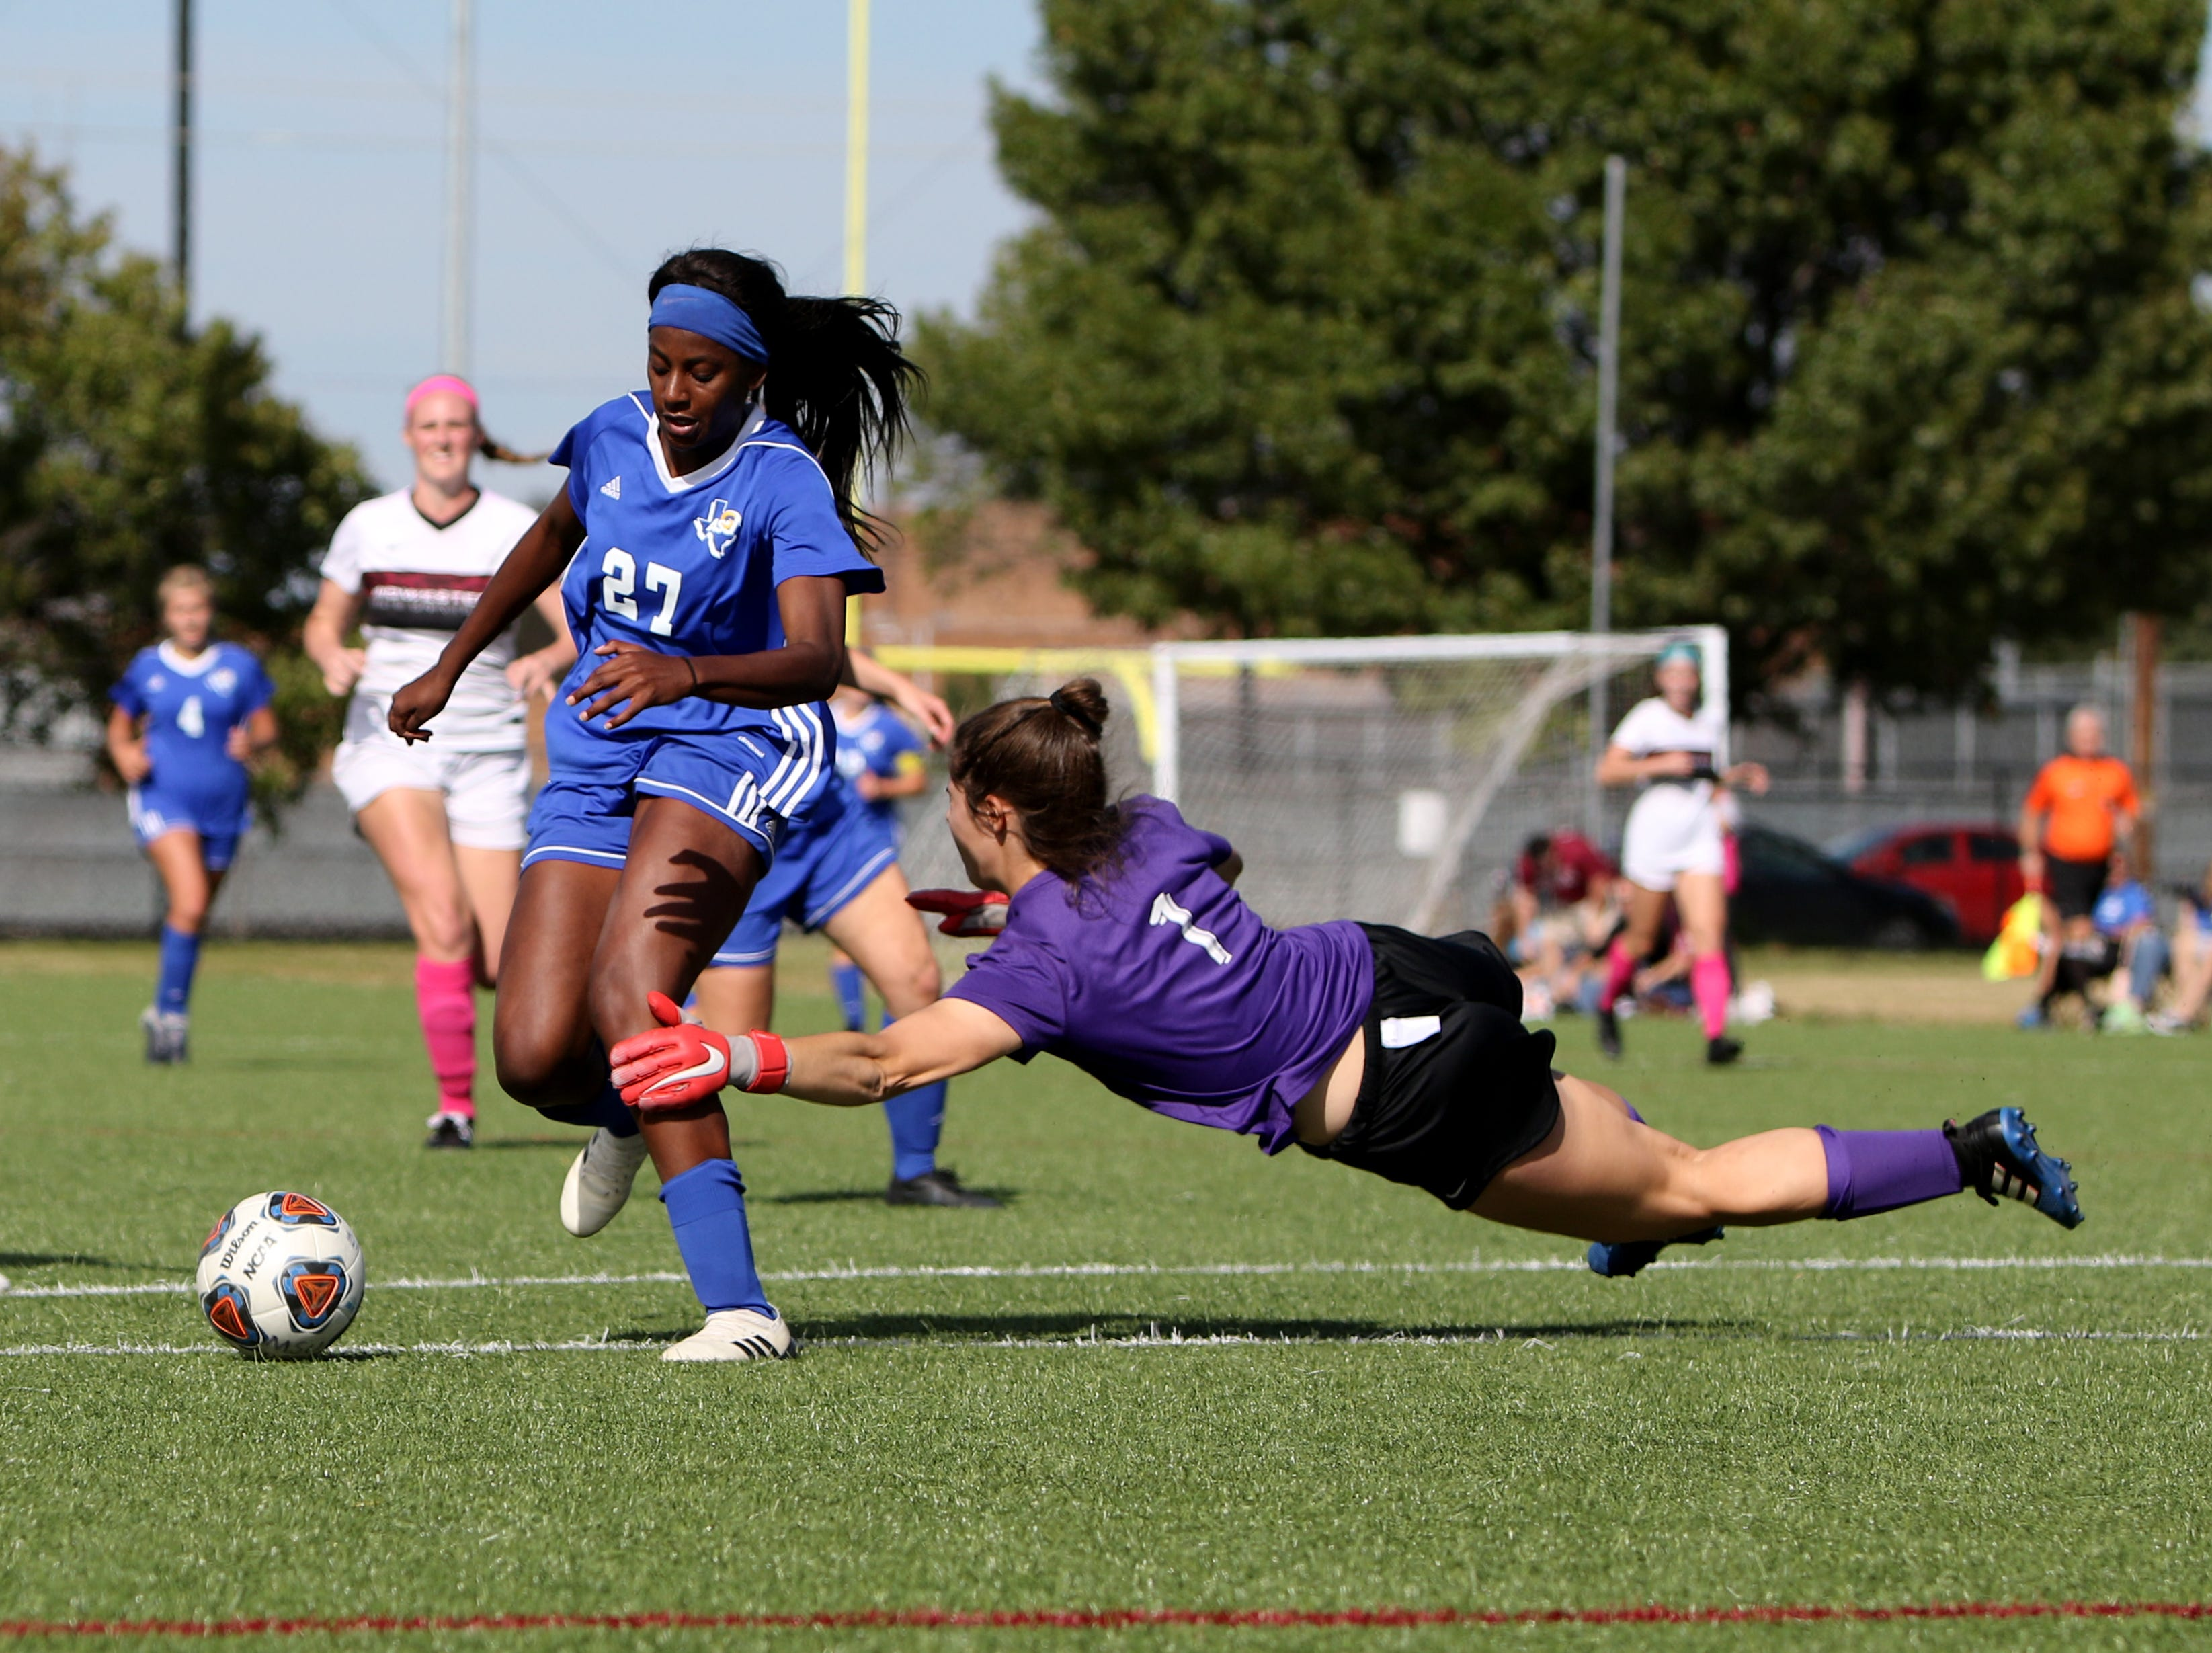 Angelo State's Trenadey Scott beats Midwestern State goalie Samantha Upton to go on to score the winning goal in overtime Sunday, Oct. 21, 2018, on the MSU soccer practice field.